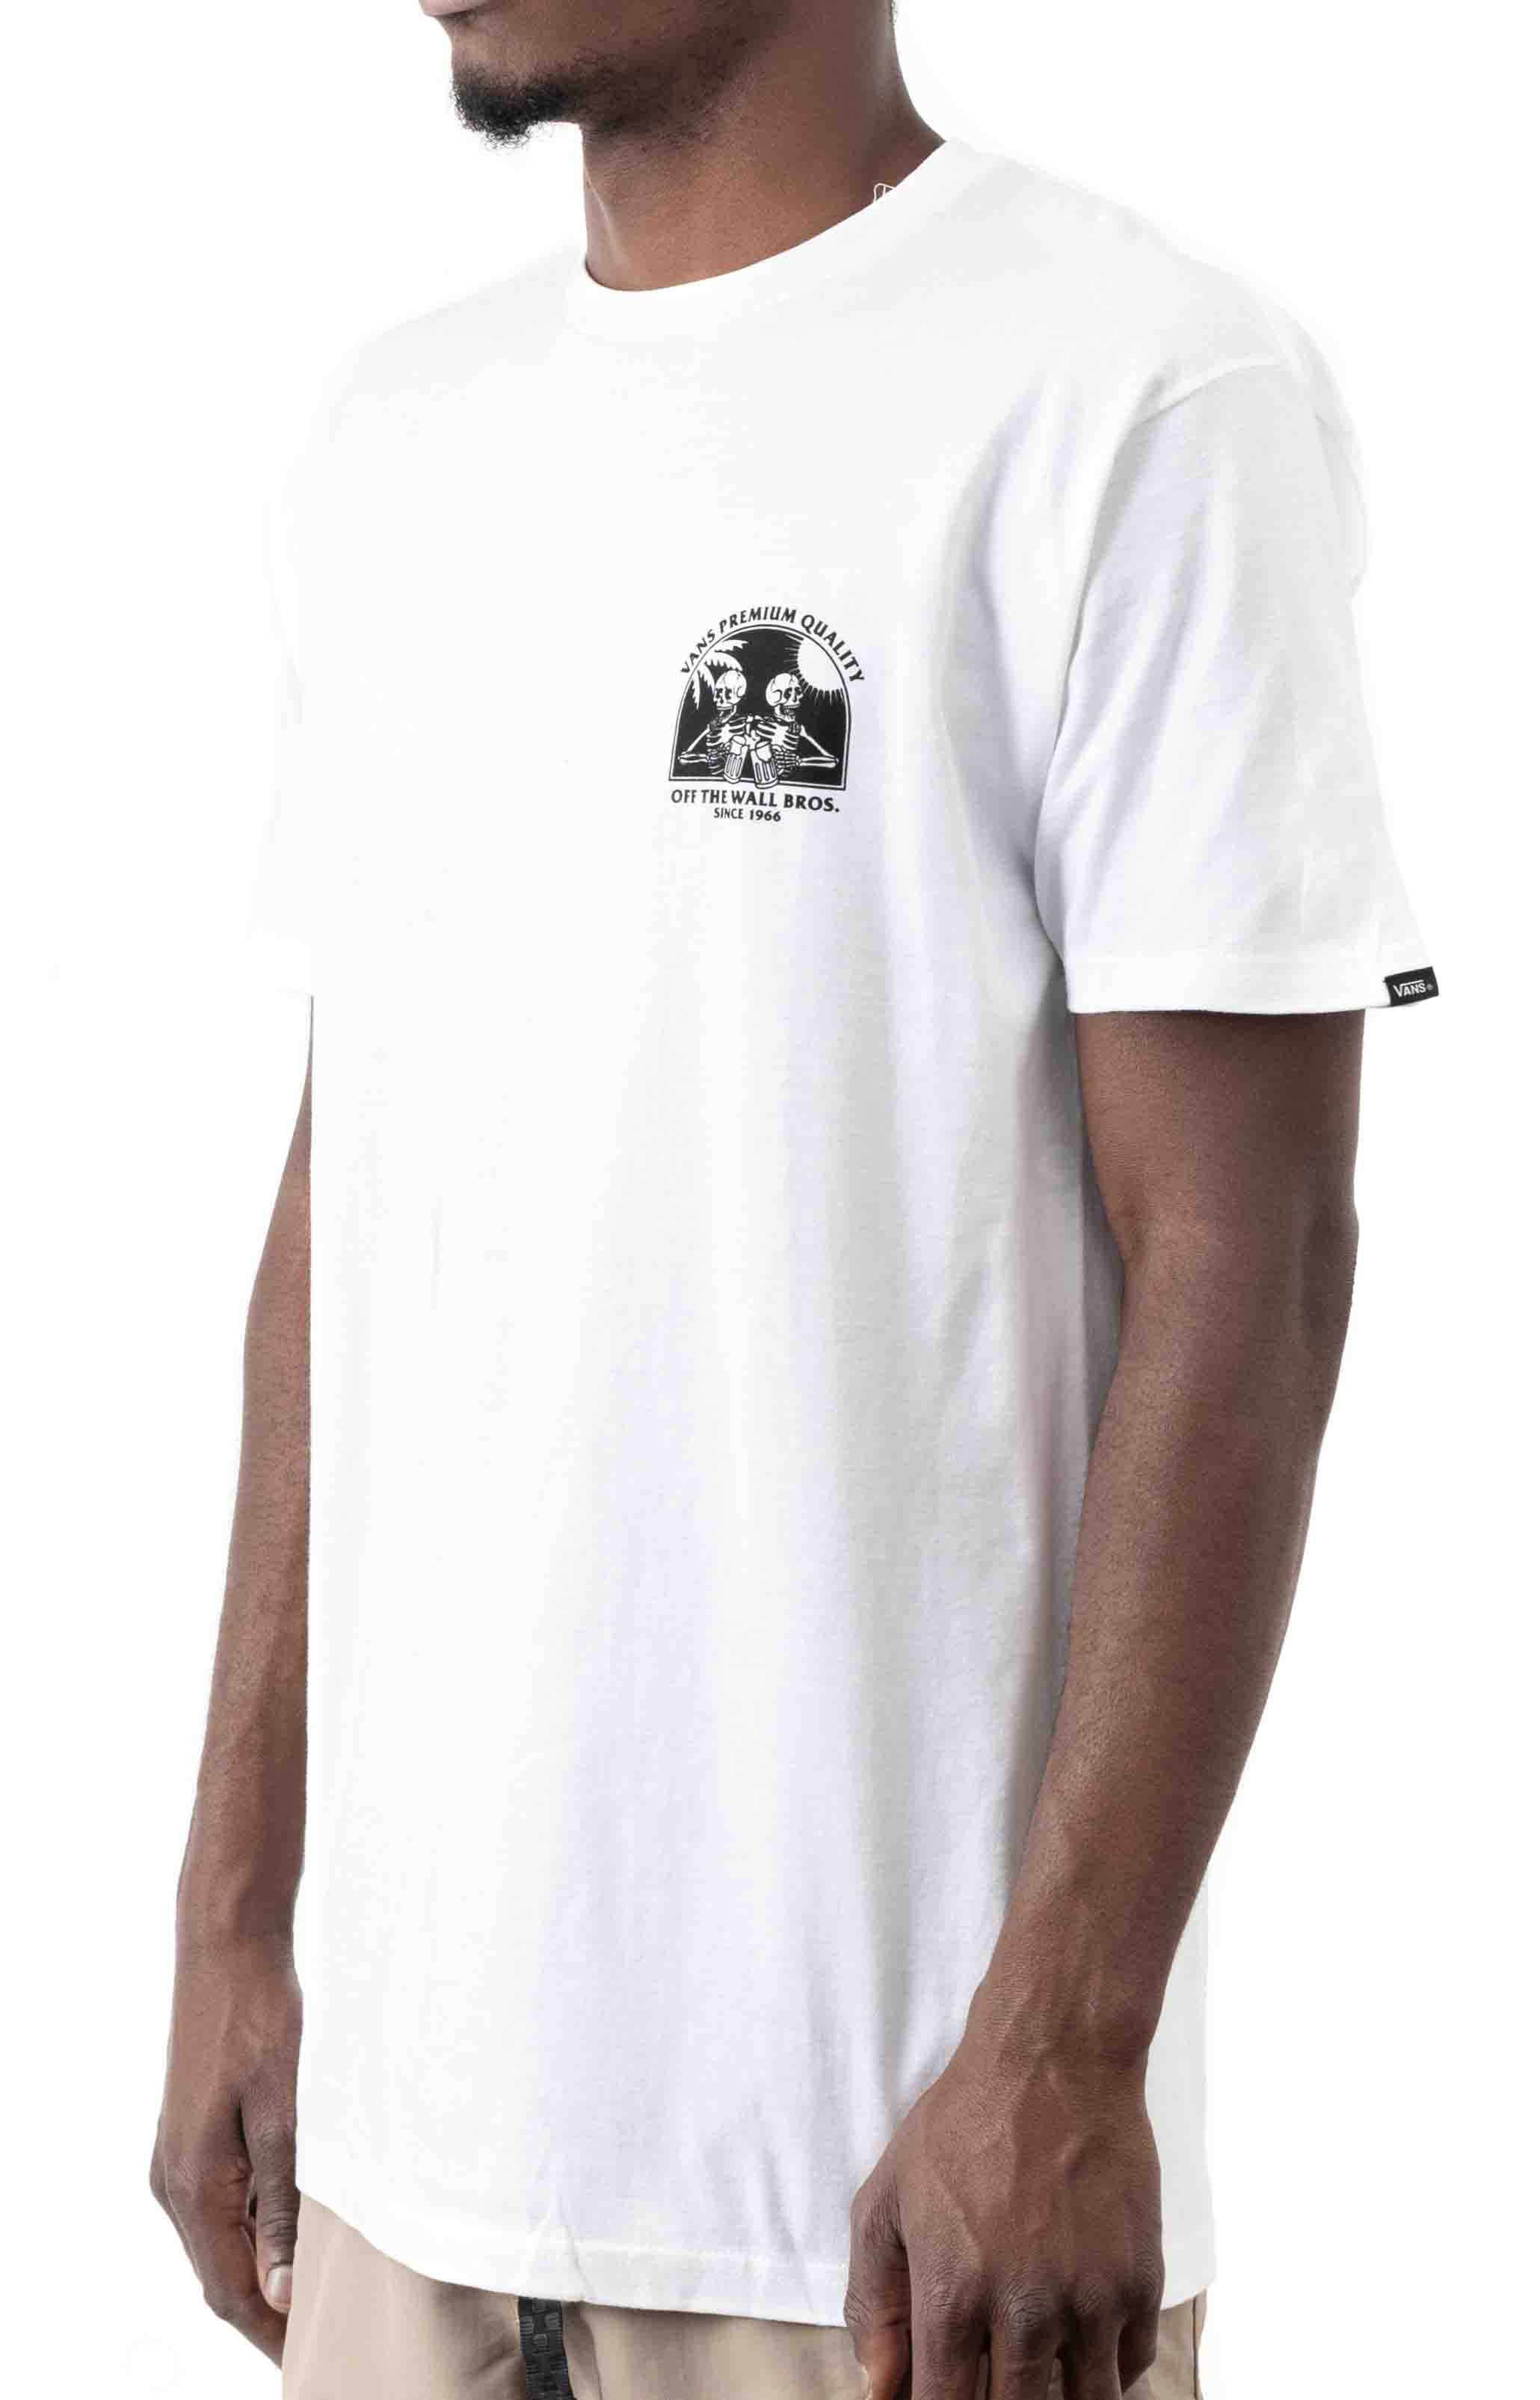 Off The Wall Bros T-Shirt - White  2